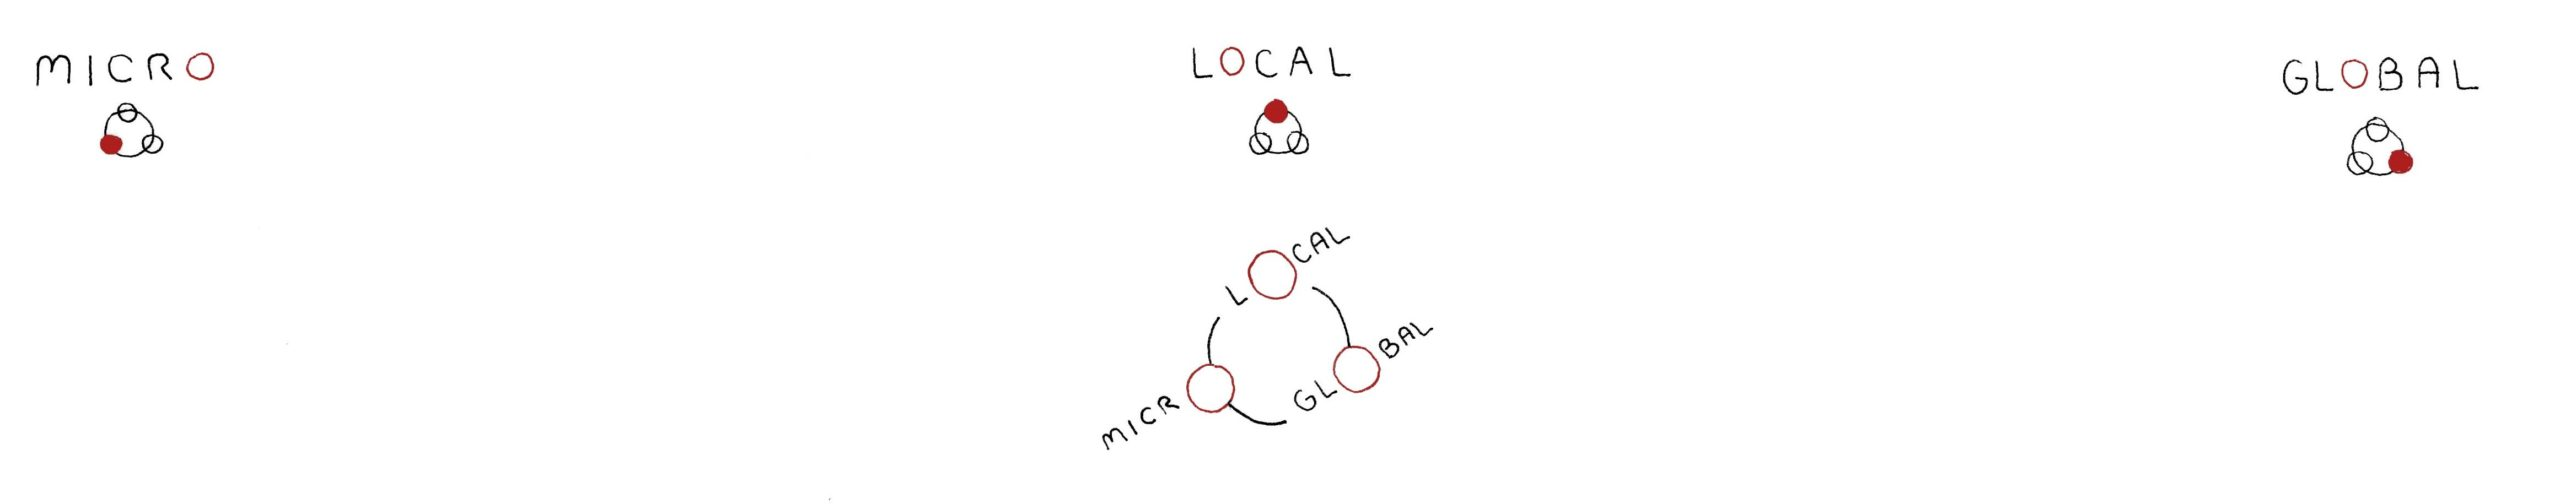 superscape_micro_local_global